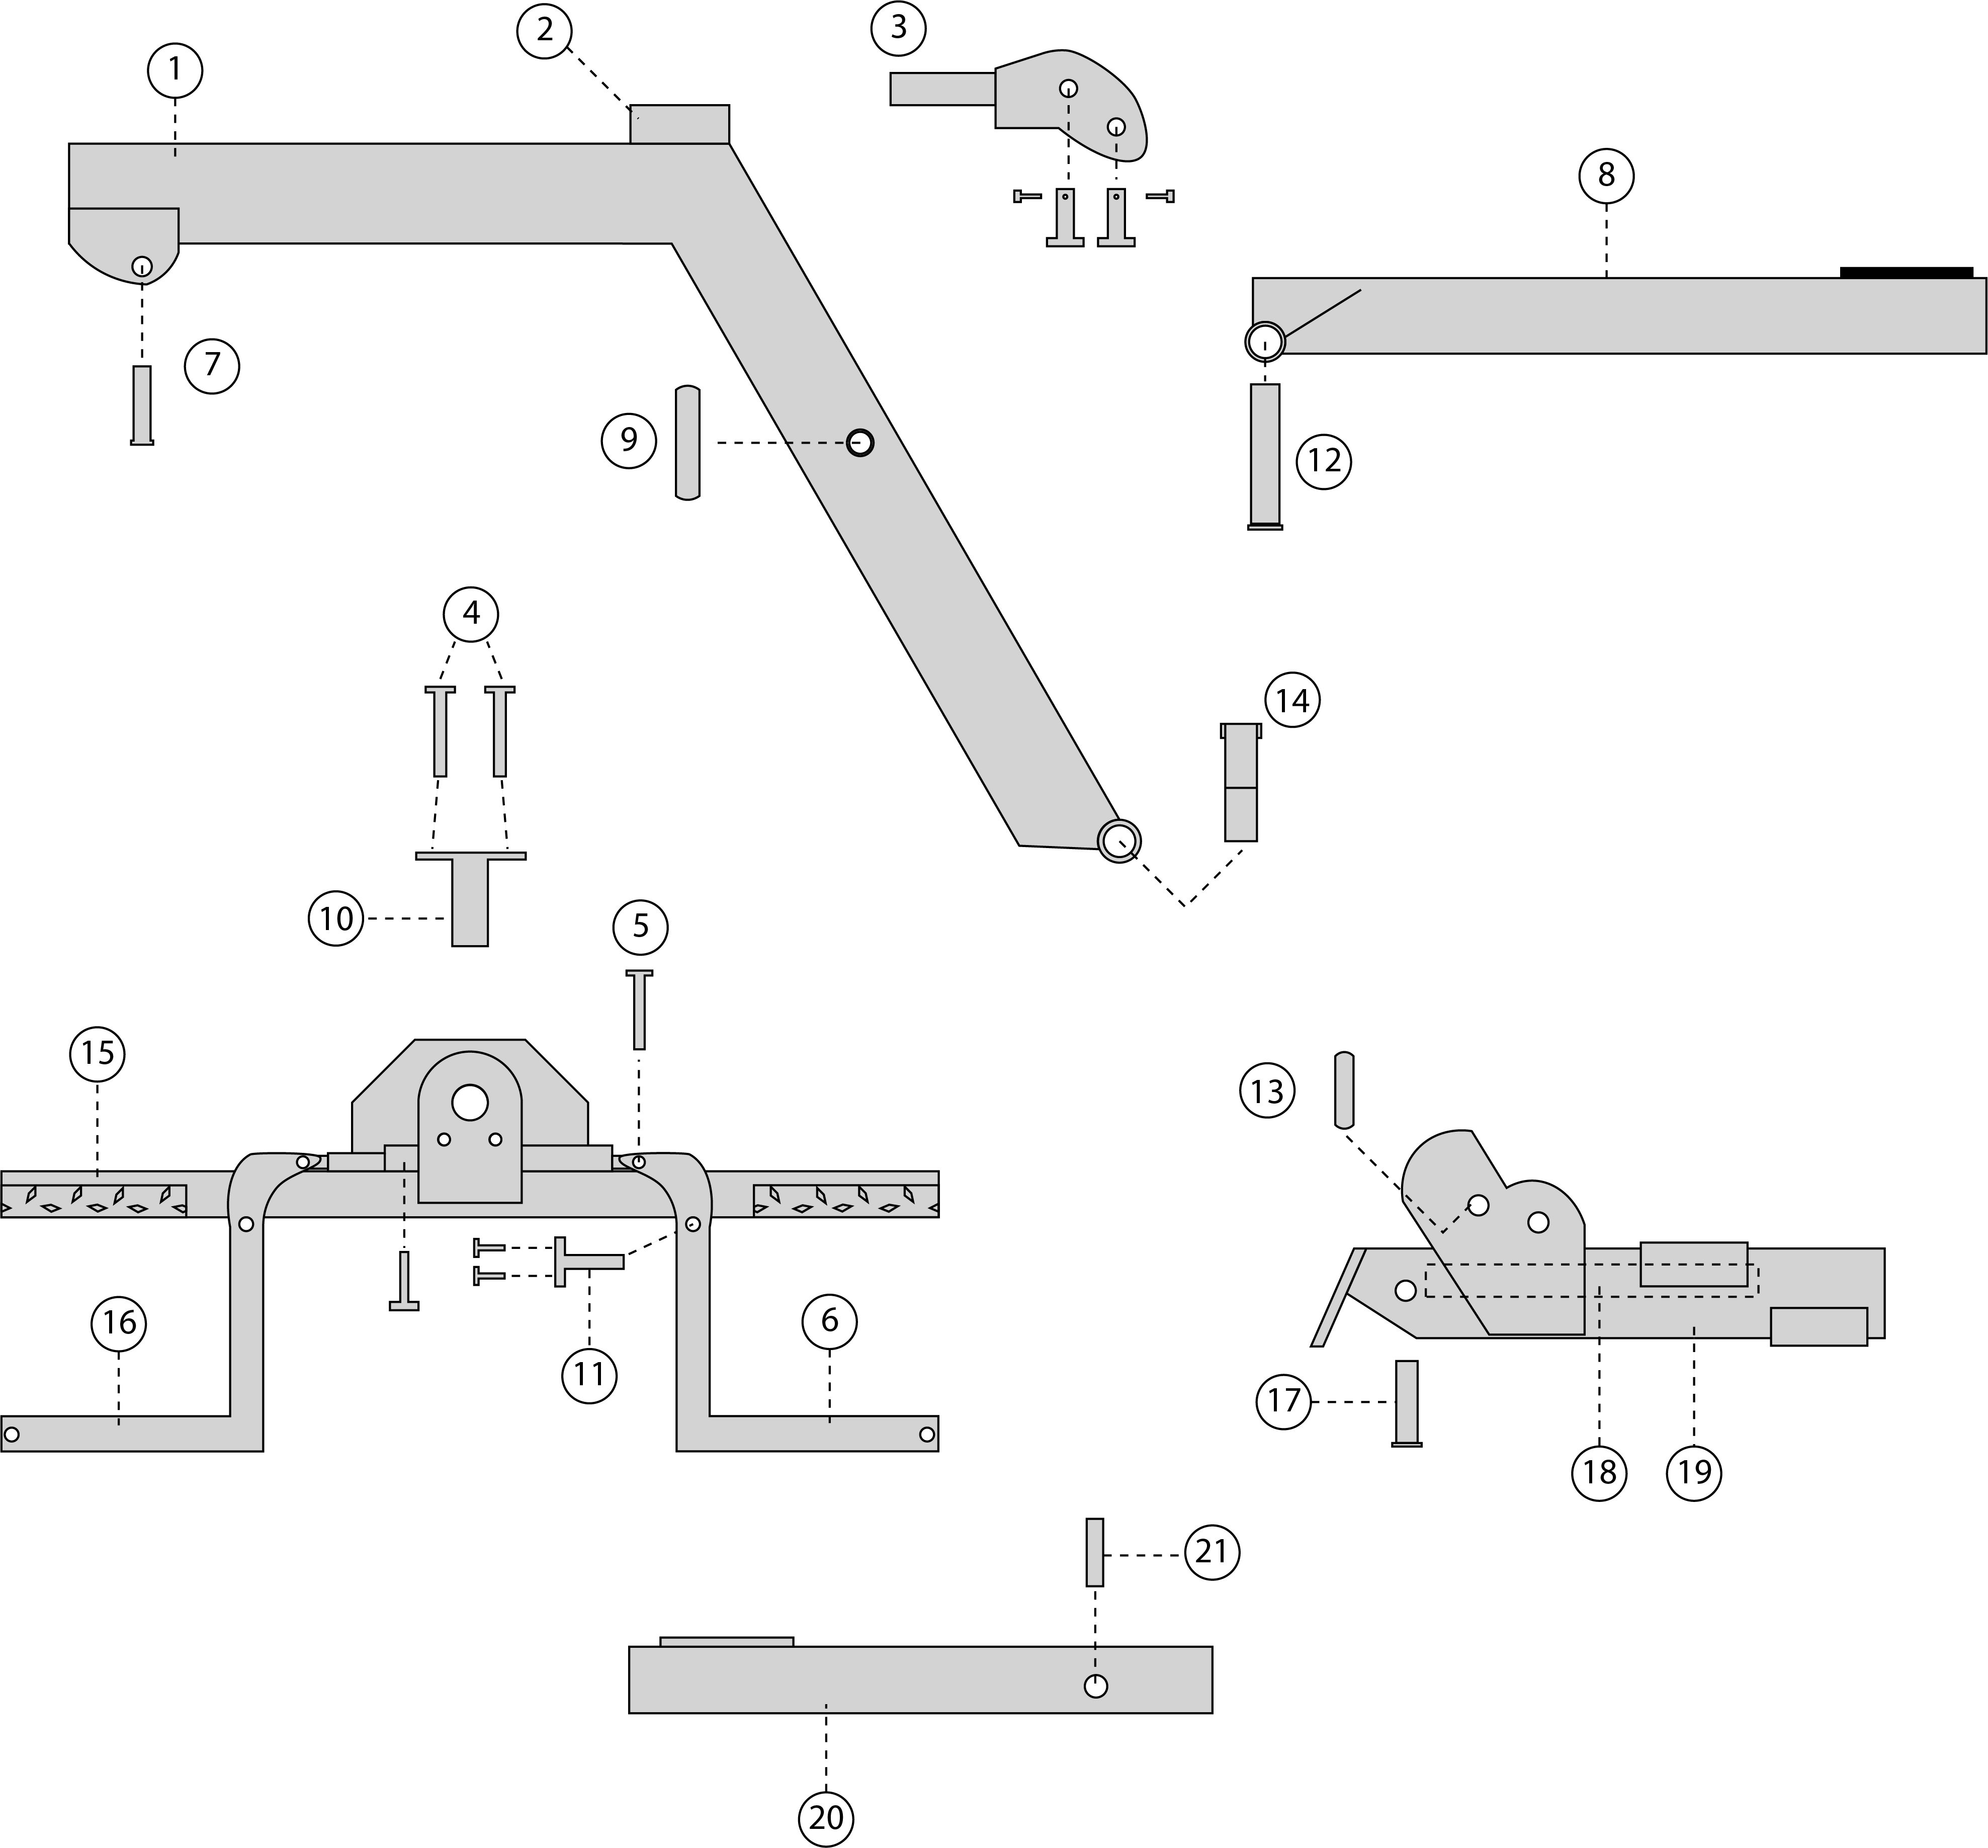 Where Can I Get A Vacuum Diagram For A 1997 Ford F150 With A 46 Liter